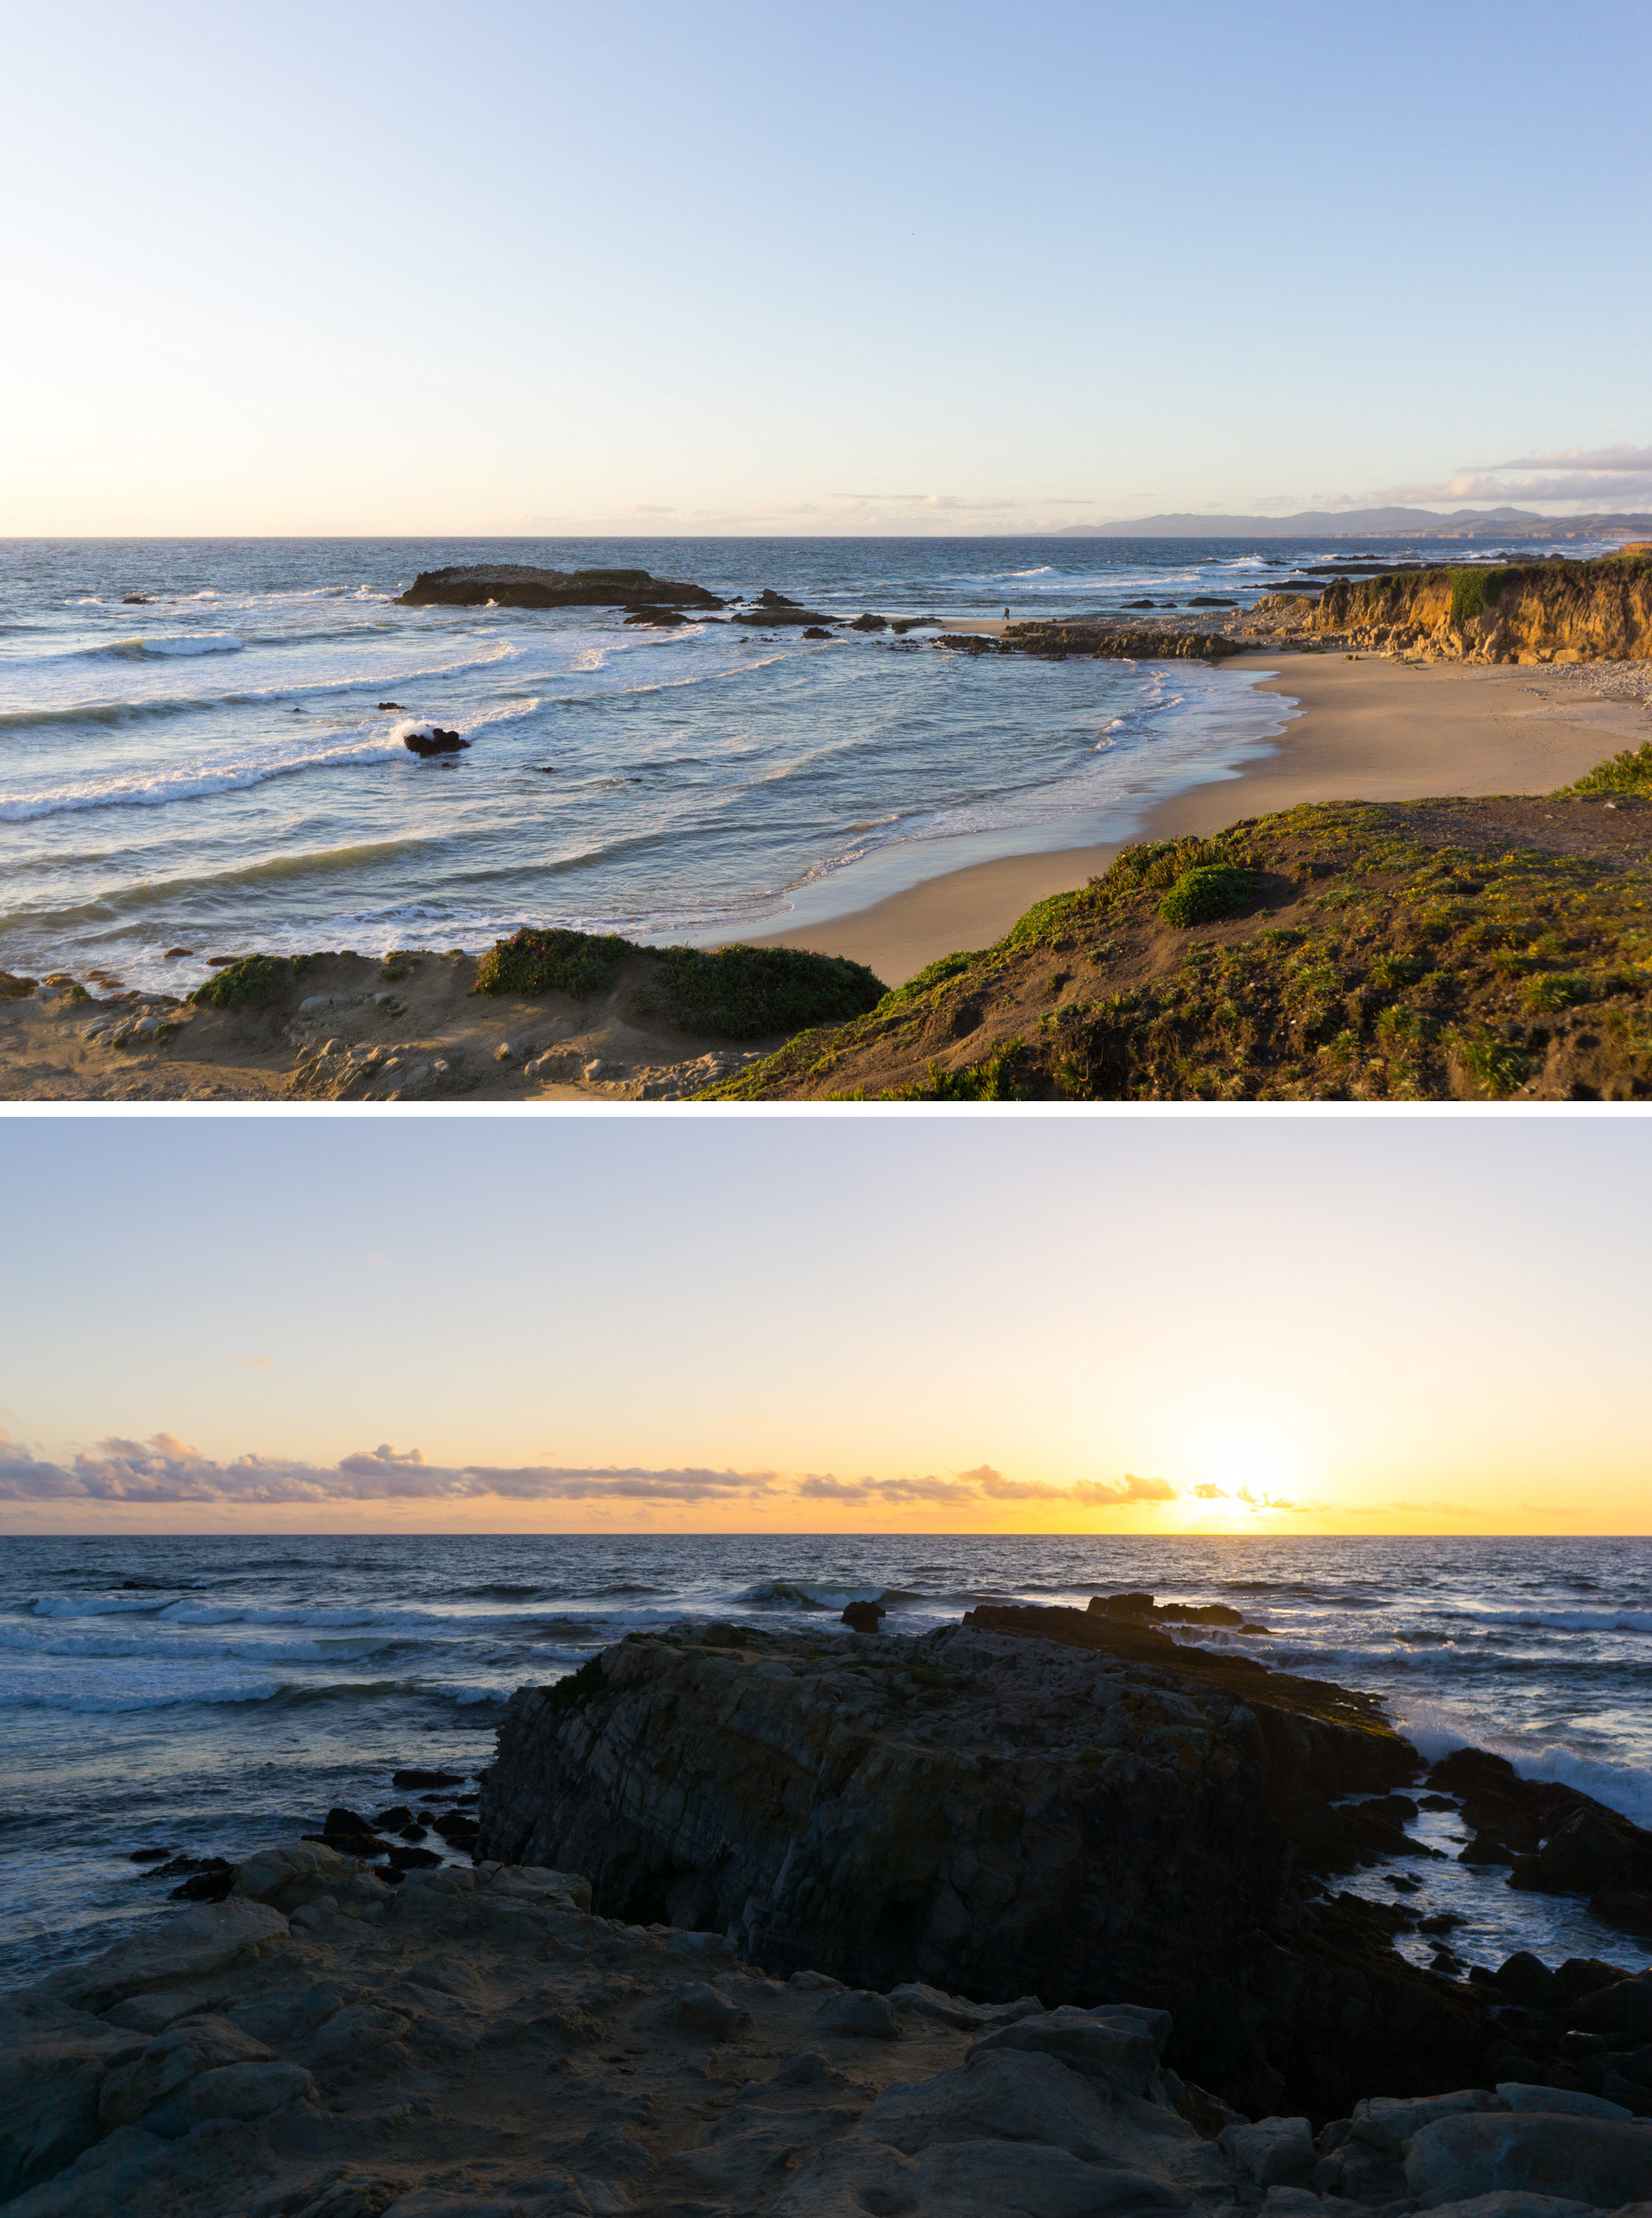 Pacific Coast Highway Road Trip Guide   California Road Trip Tips   Sharing the travel route and great places to visit on an LA to San Francisco road trip.